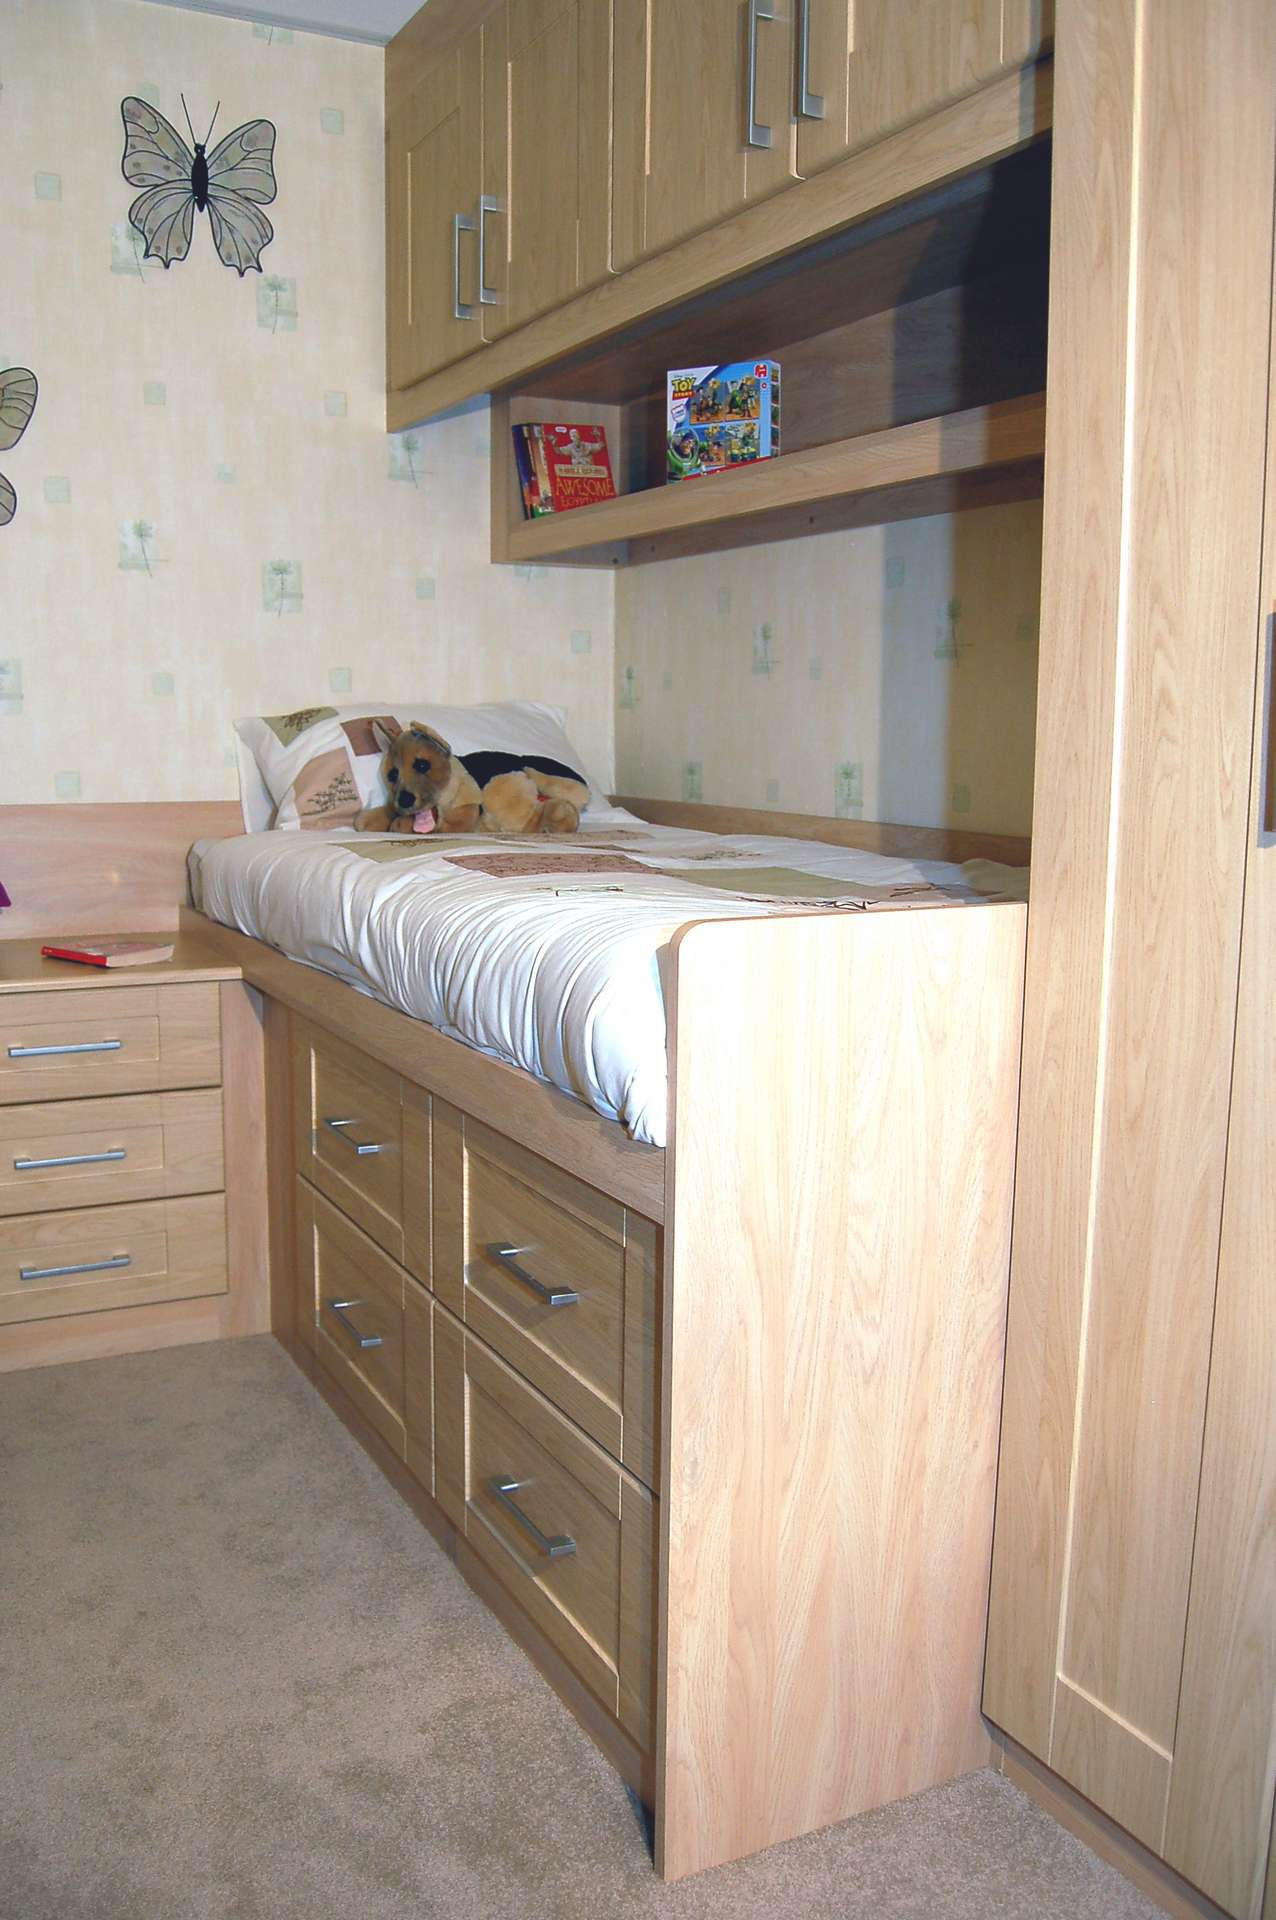 Cabin Bedroom Fitted Furniture: Childrens Cabin Beds With Wardrobes; Childens Storage